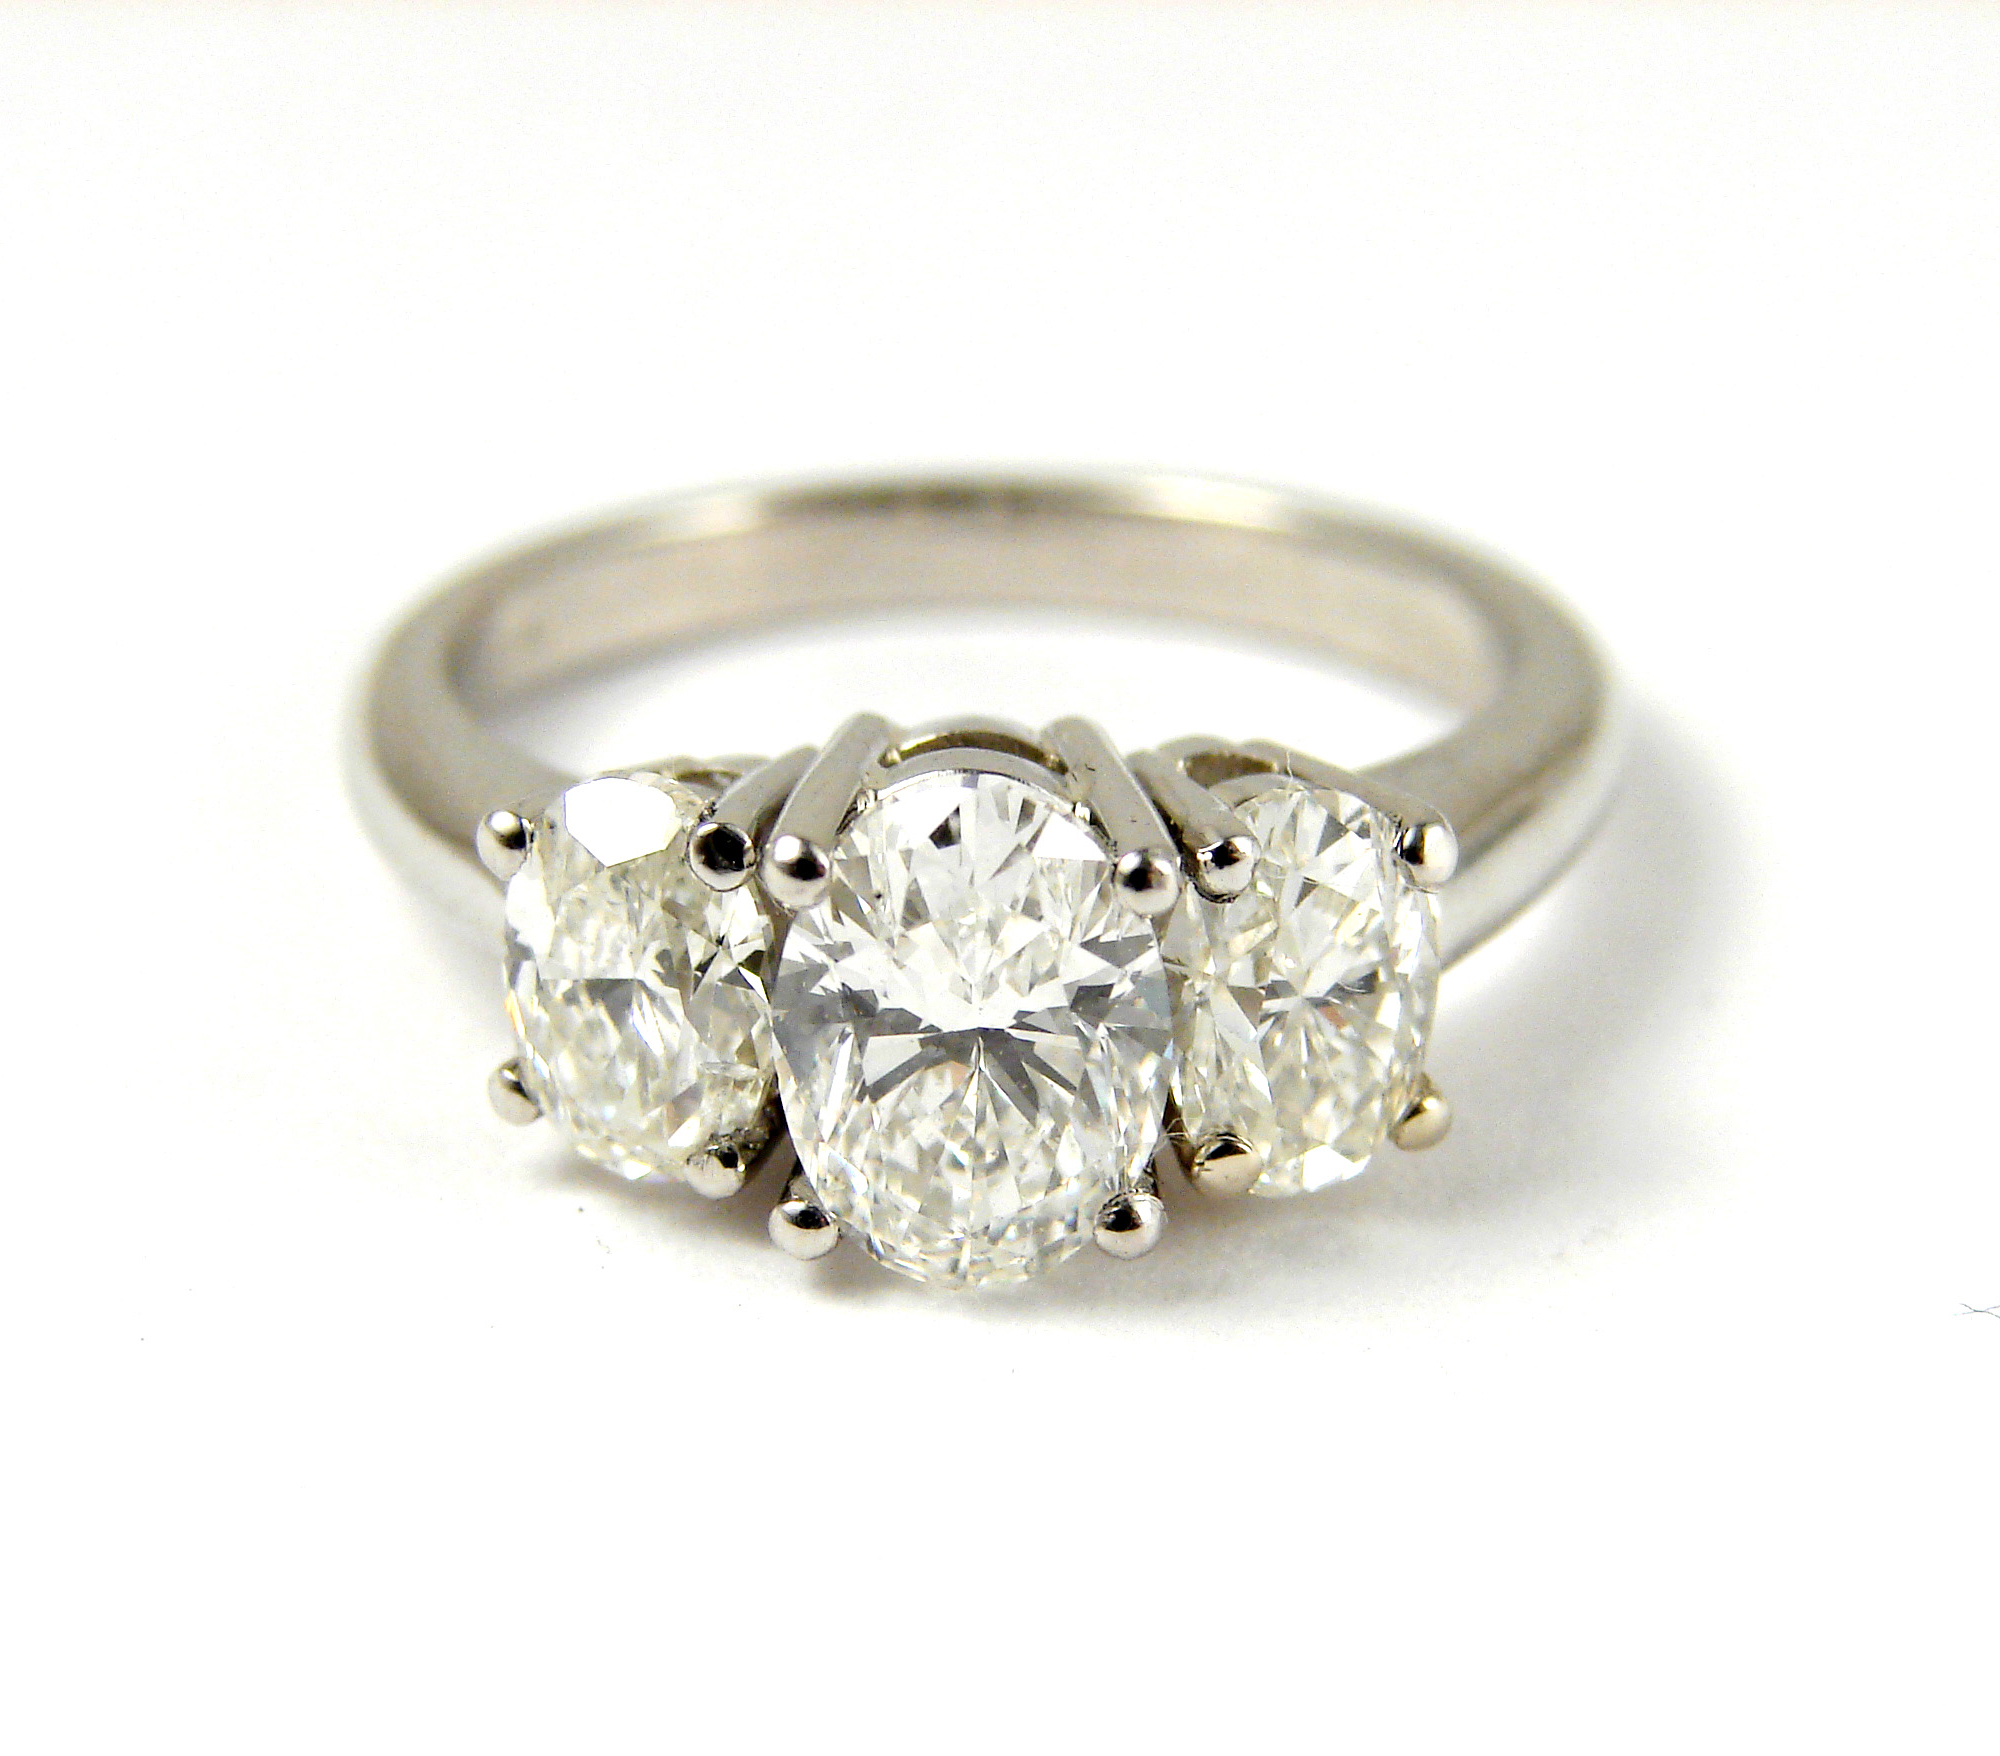 3 stone oval ring, 1.00ct diamond center stone, 1.00tcw diamond side stones, platinum mount.  Starting at $10,800 for this stone size and quality  Can be customizable with any stone, size, metal etc.